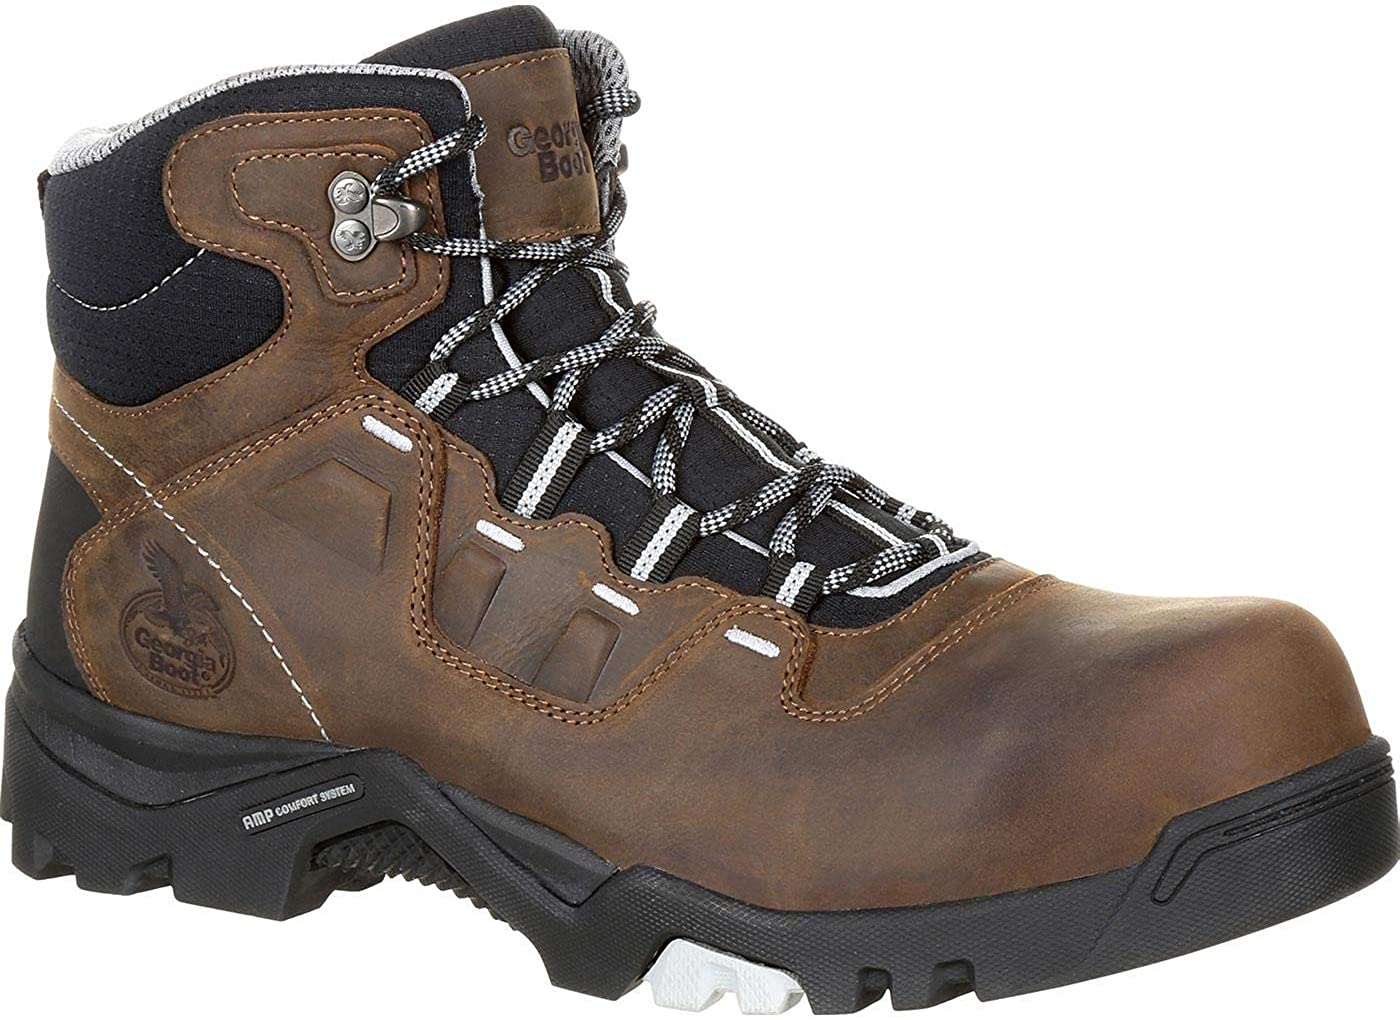 Georgia Men's Boot Amplitude Waterproof Work Composite Toe Brown 11 EE